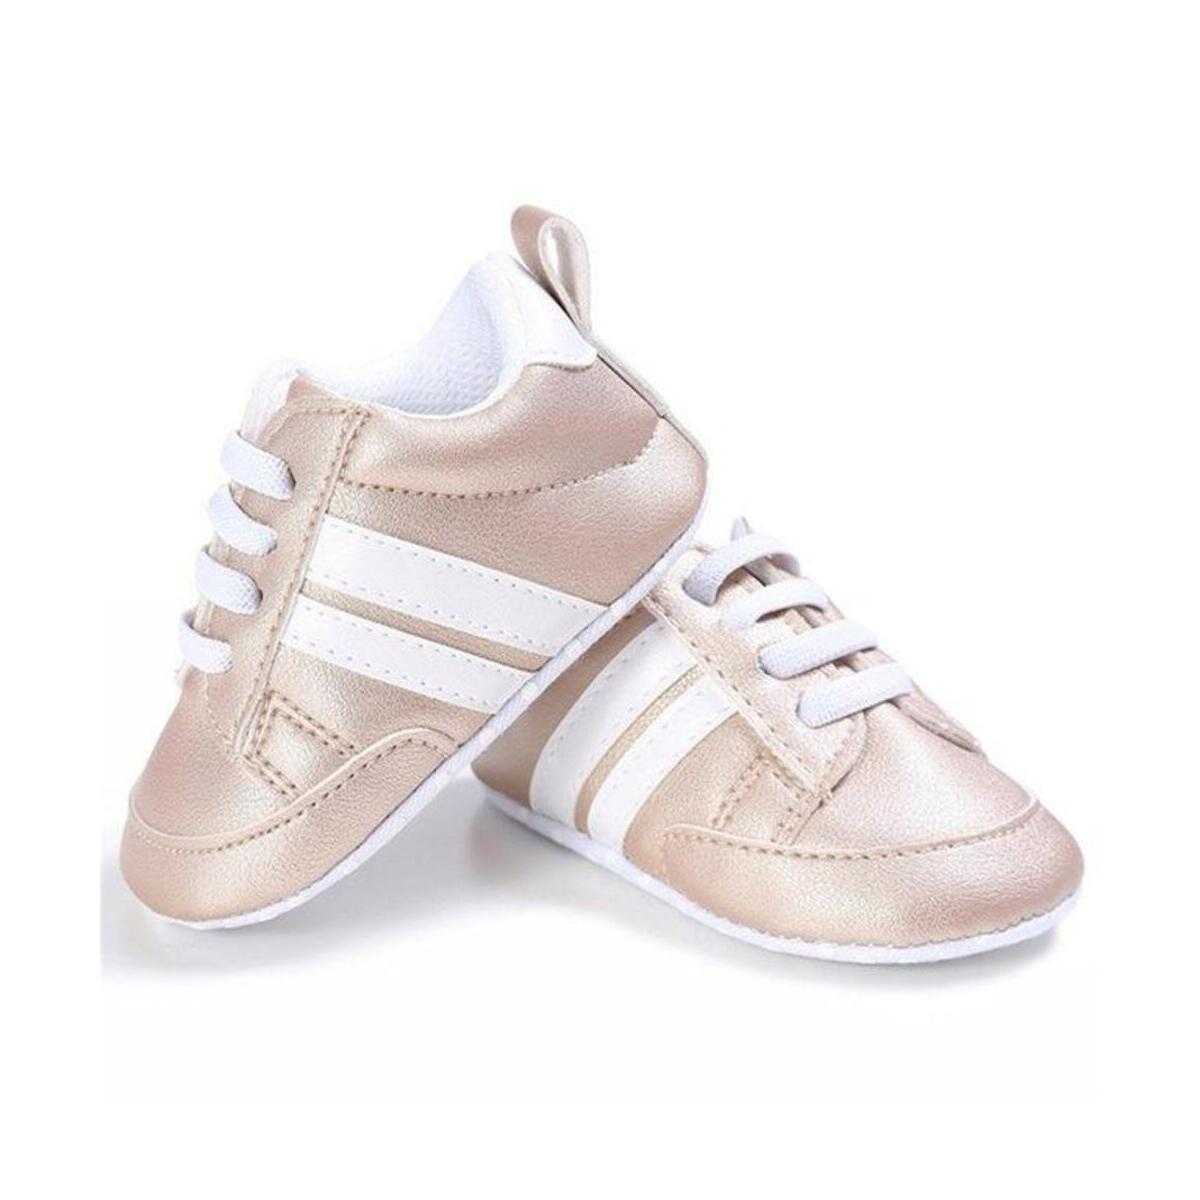 Baby Boys Girls Shoes Casual Children Shoes Classic Patchwork First Walkers Soft Sole Sports Sneakers